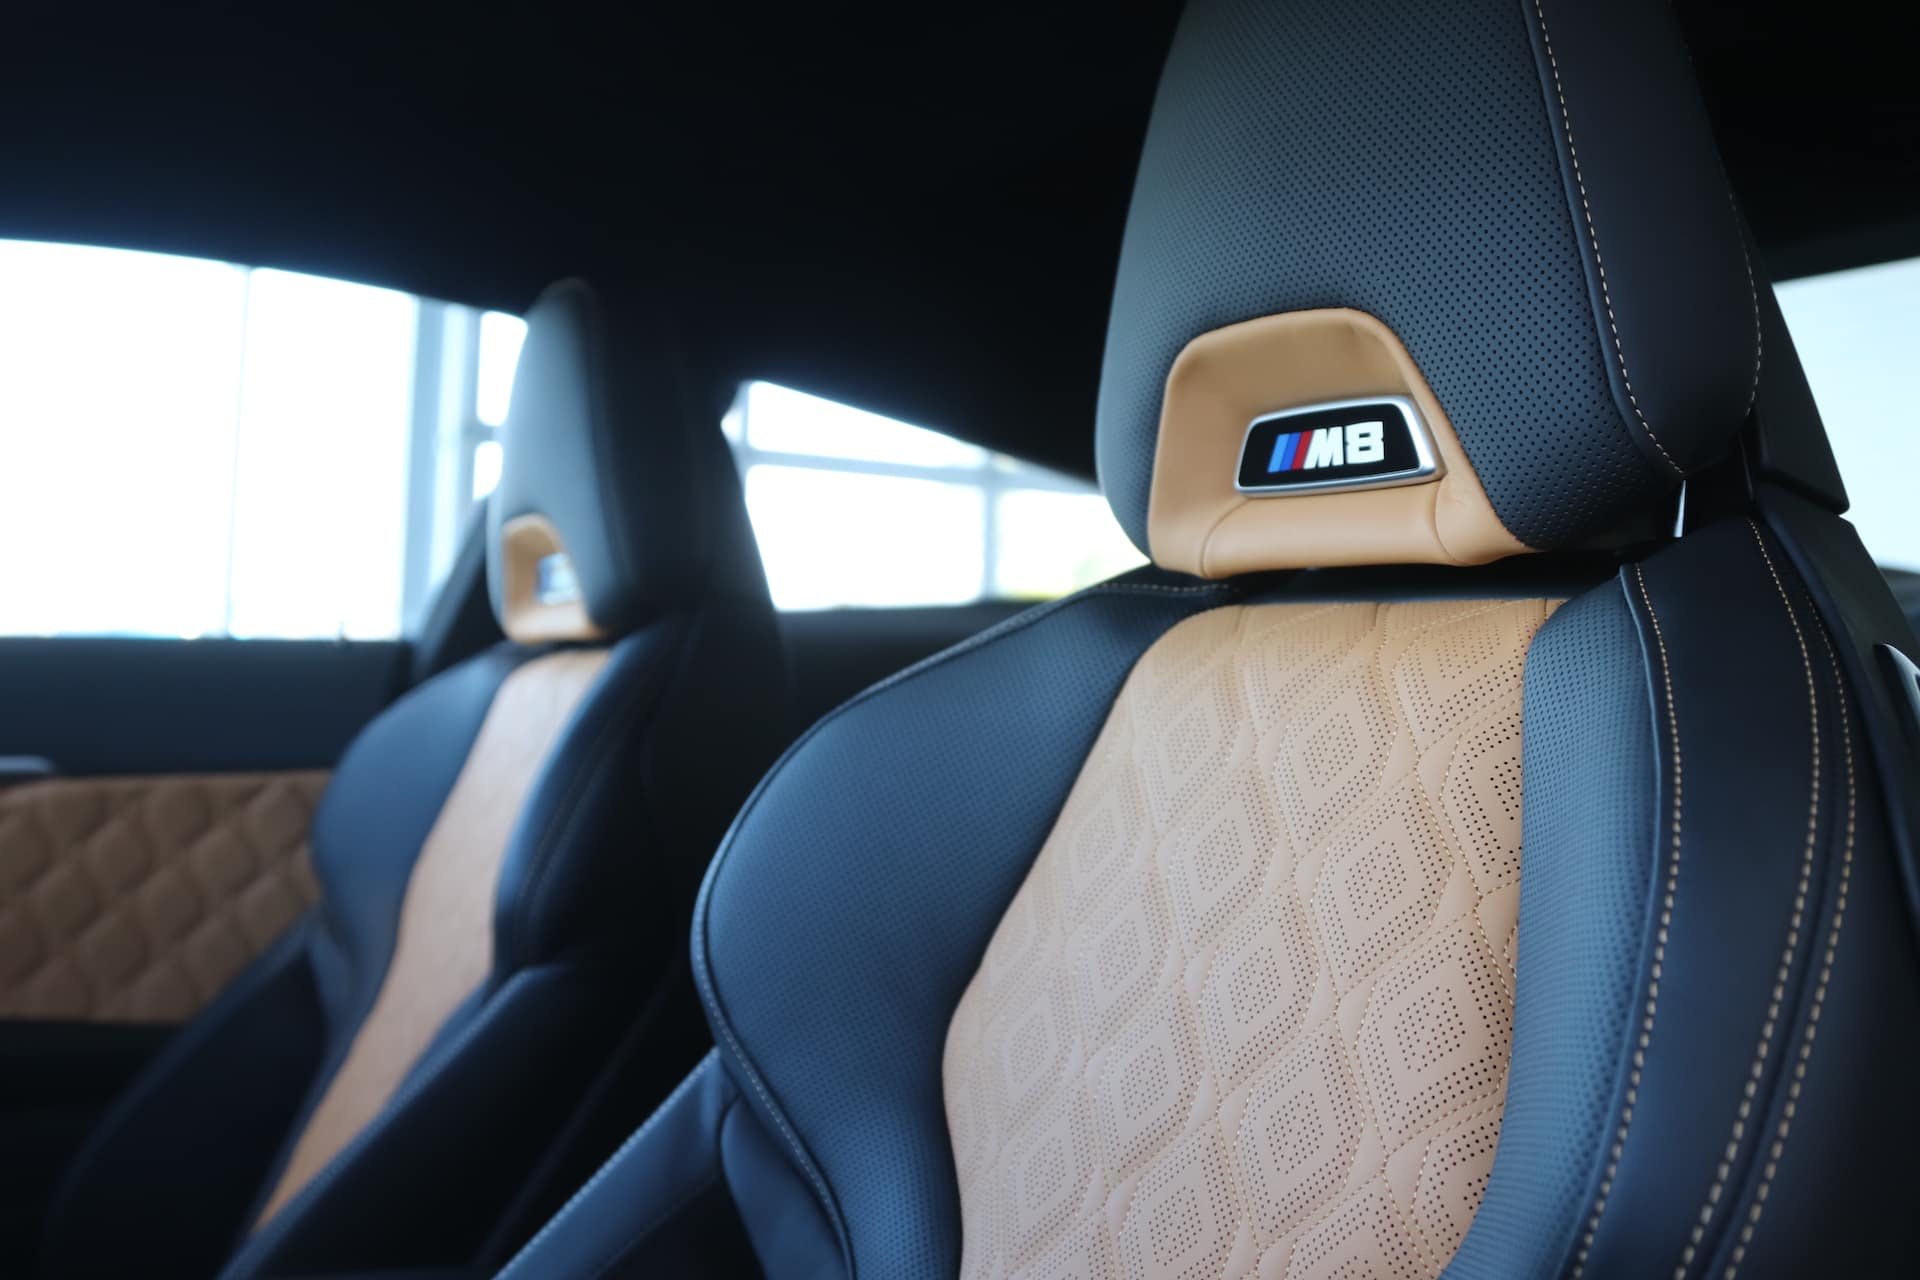 M8 Competition Leather